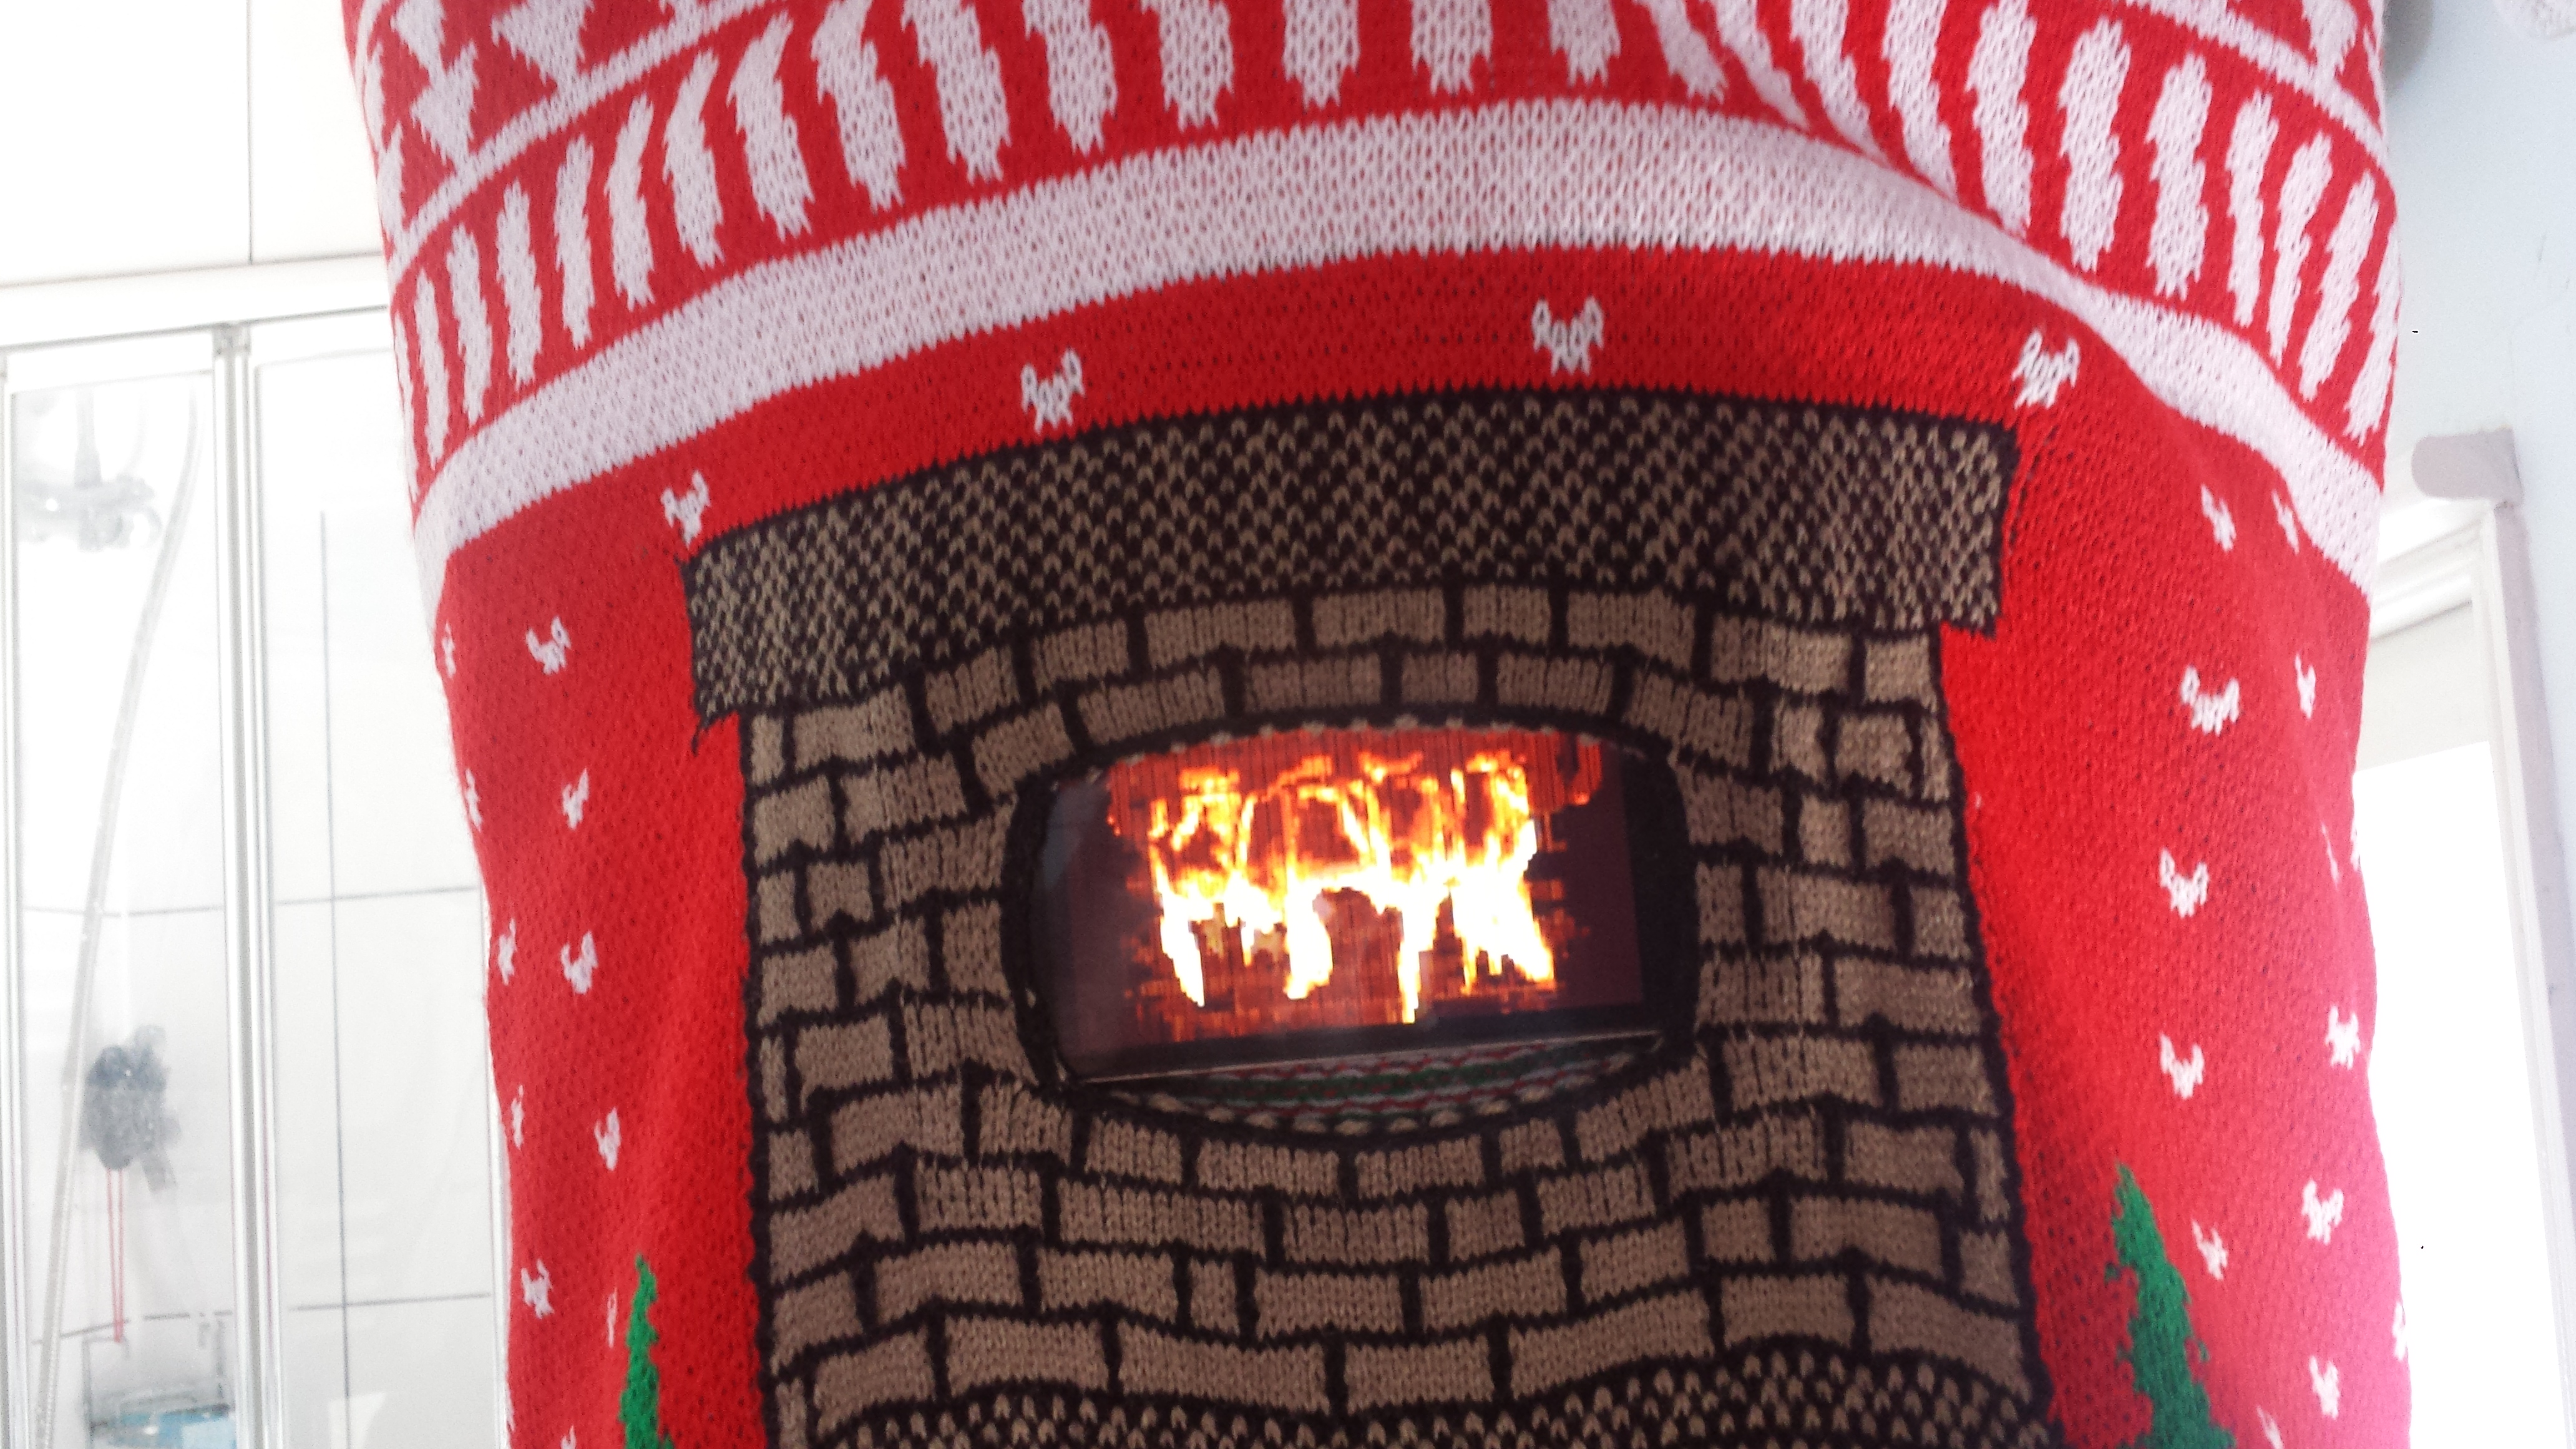 Digital Dudz bring ugly Christmas sweaters to life with the help of your smartphone